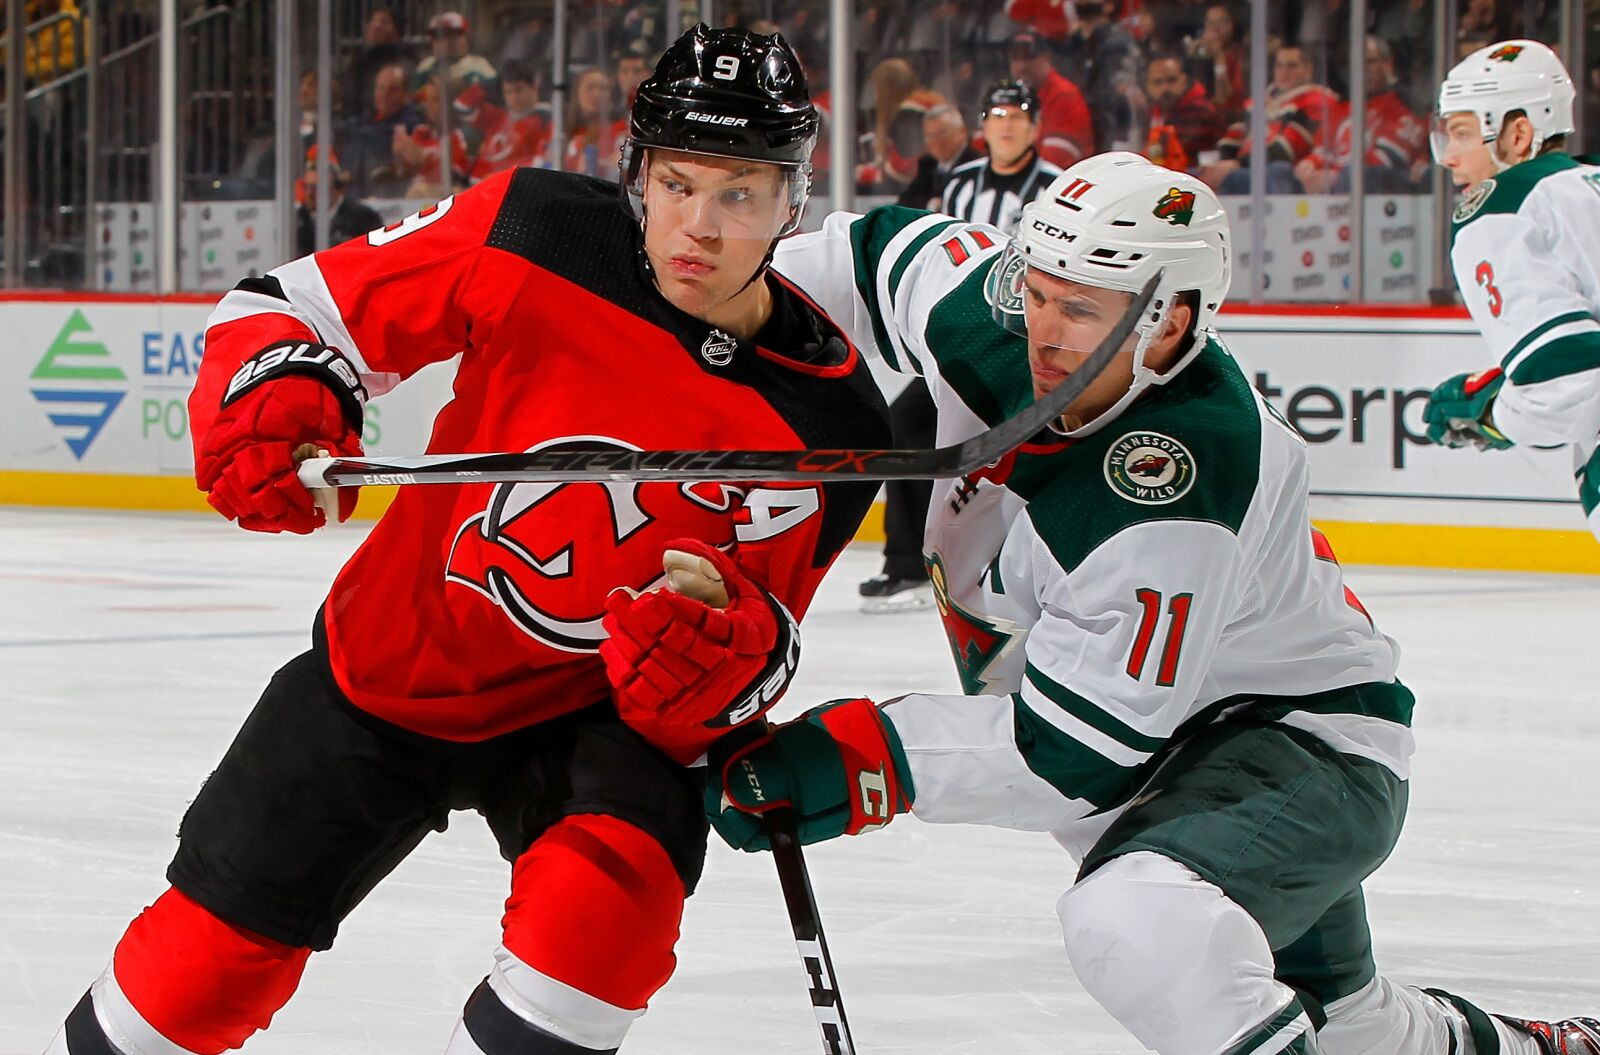 New Jersey Devils: Why Taylor Hall, Zach Parise Contract Situations are Different